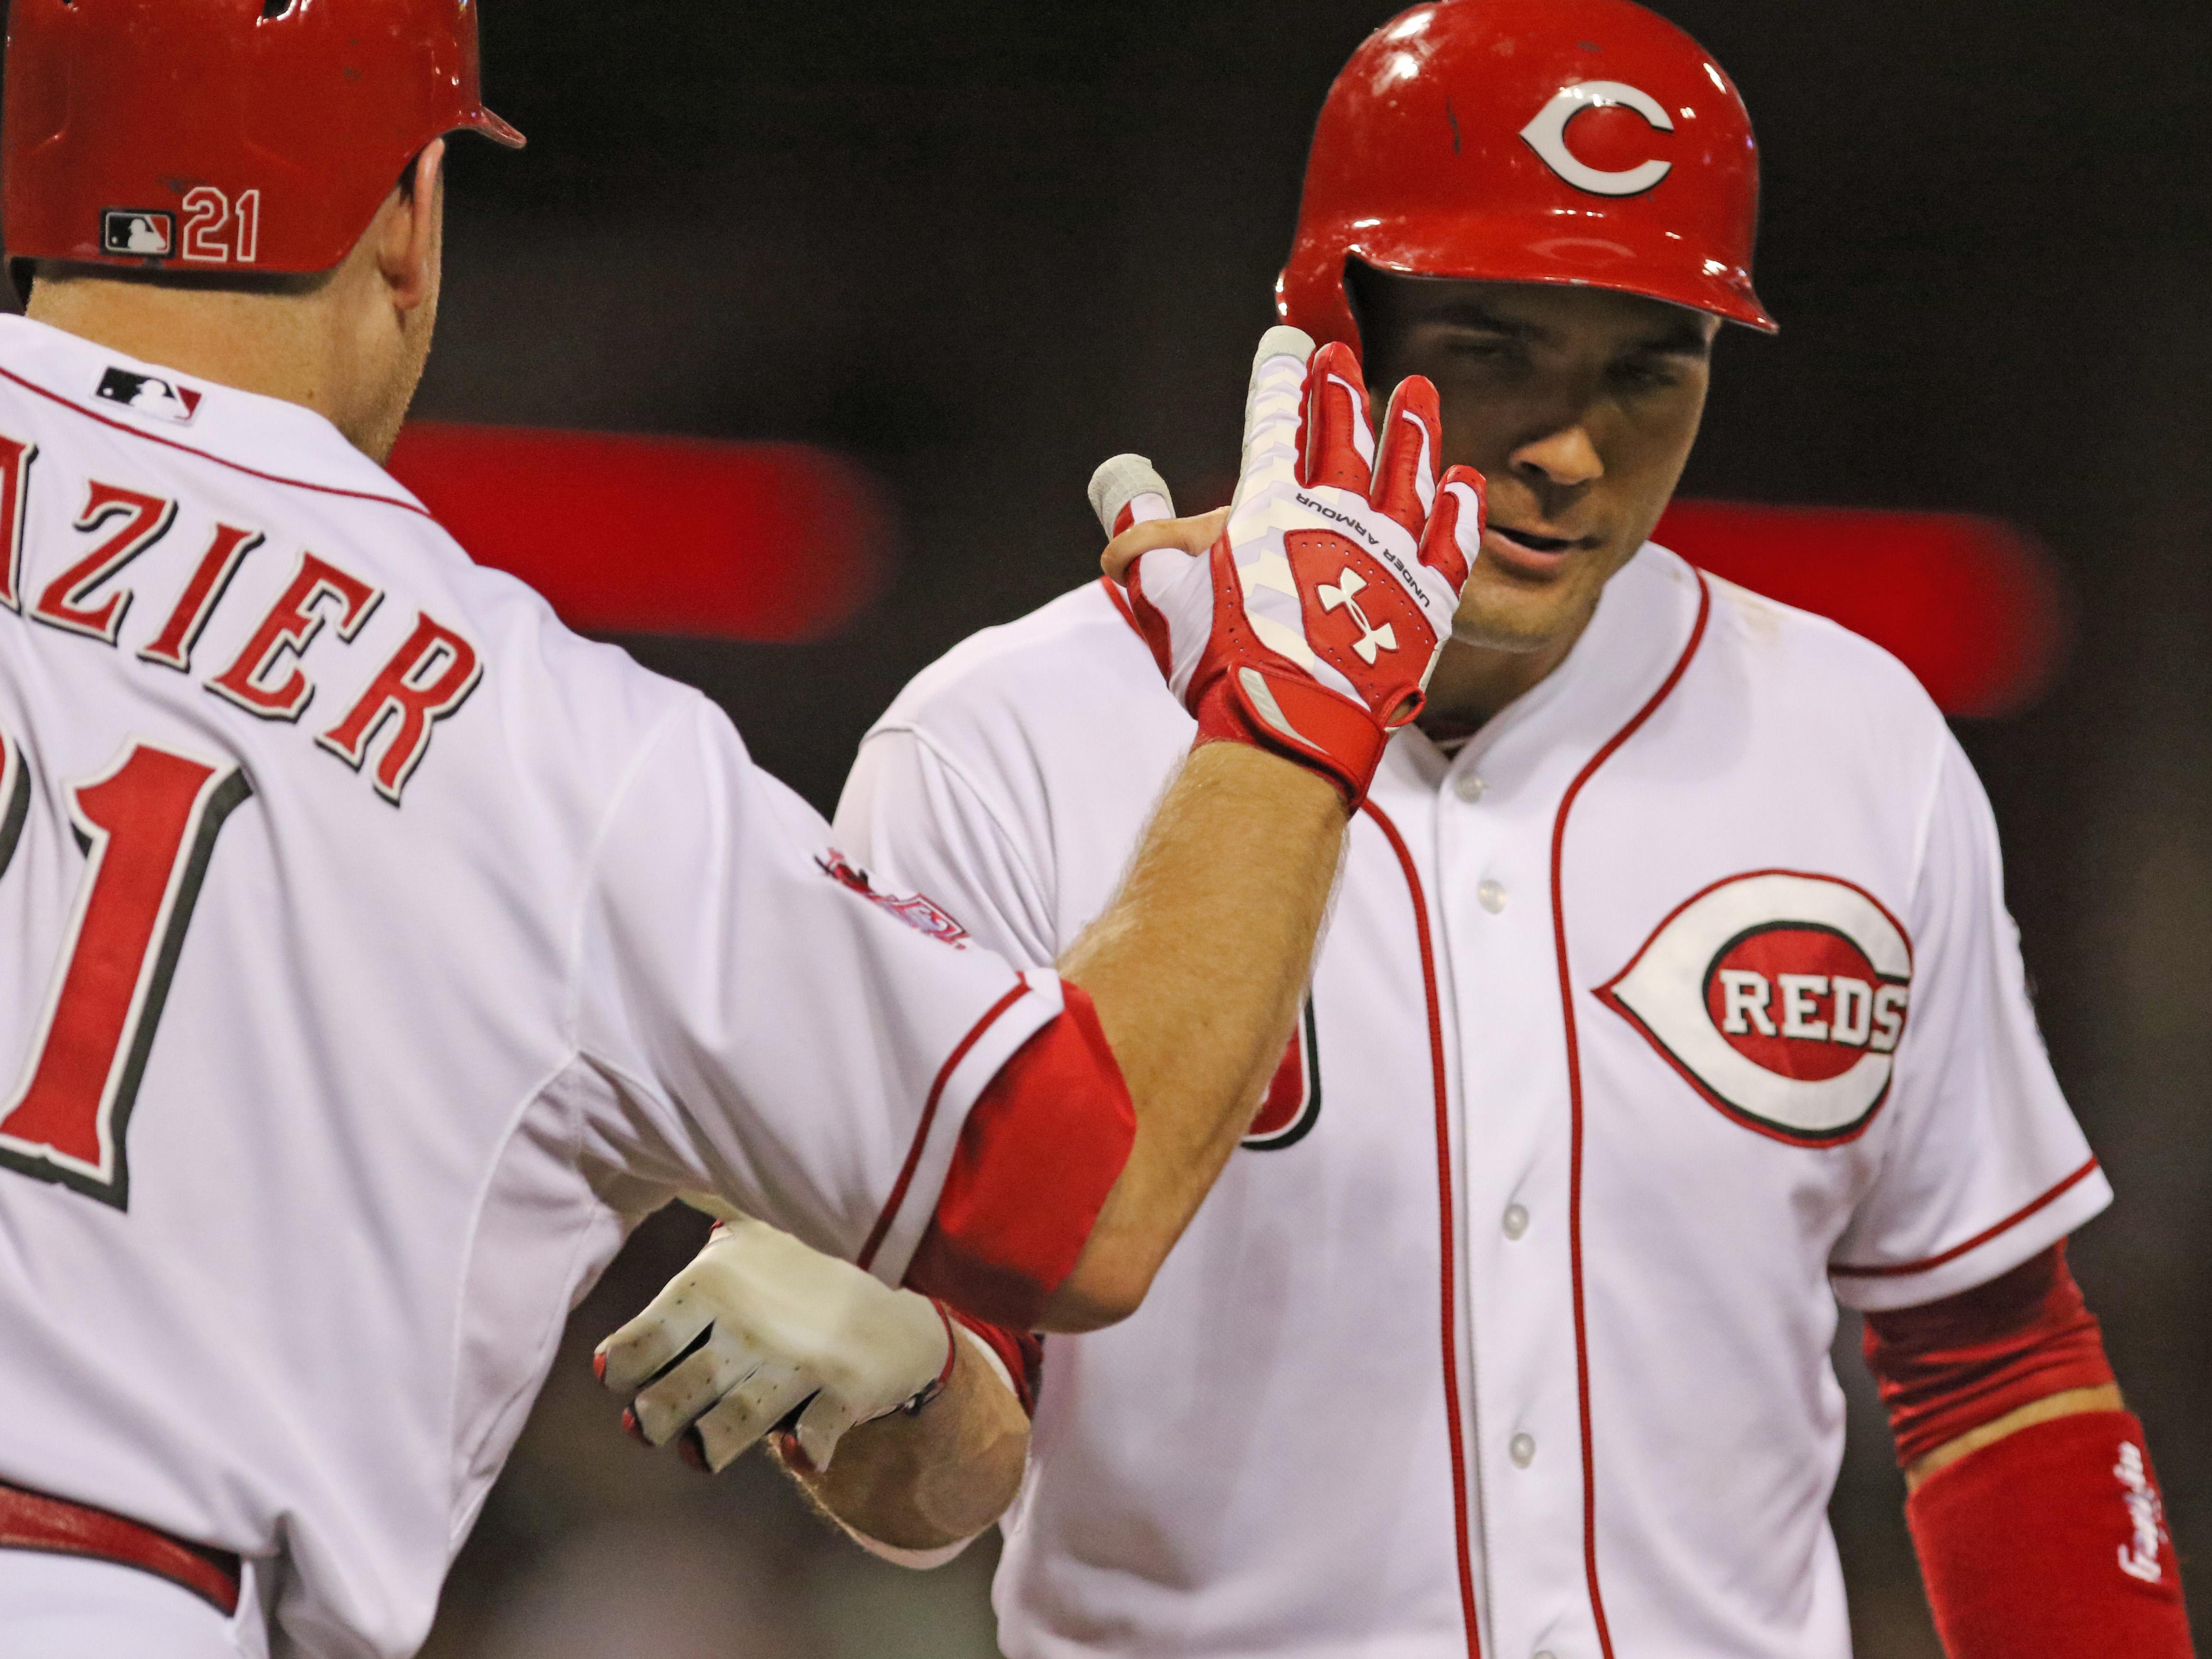 Cincinnati Reds first baseman Joey Votto (19) is congratulated by Todd Frazier after hitting a solo home run off Cleveland Indians starting pitcher Trevor Bauer (47) during Friday's game at Great American Ball Park.